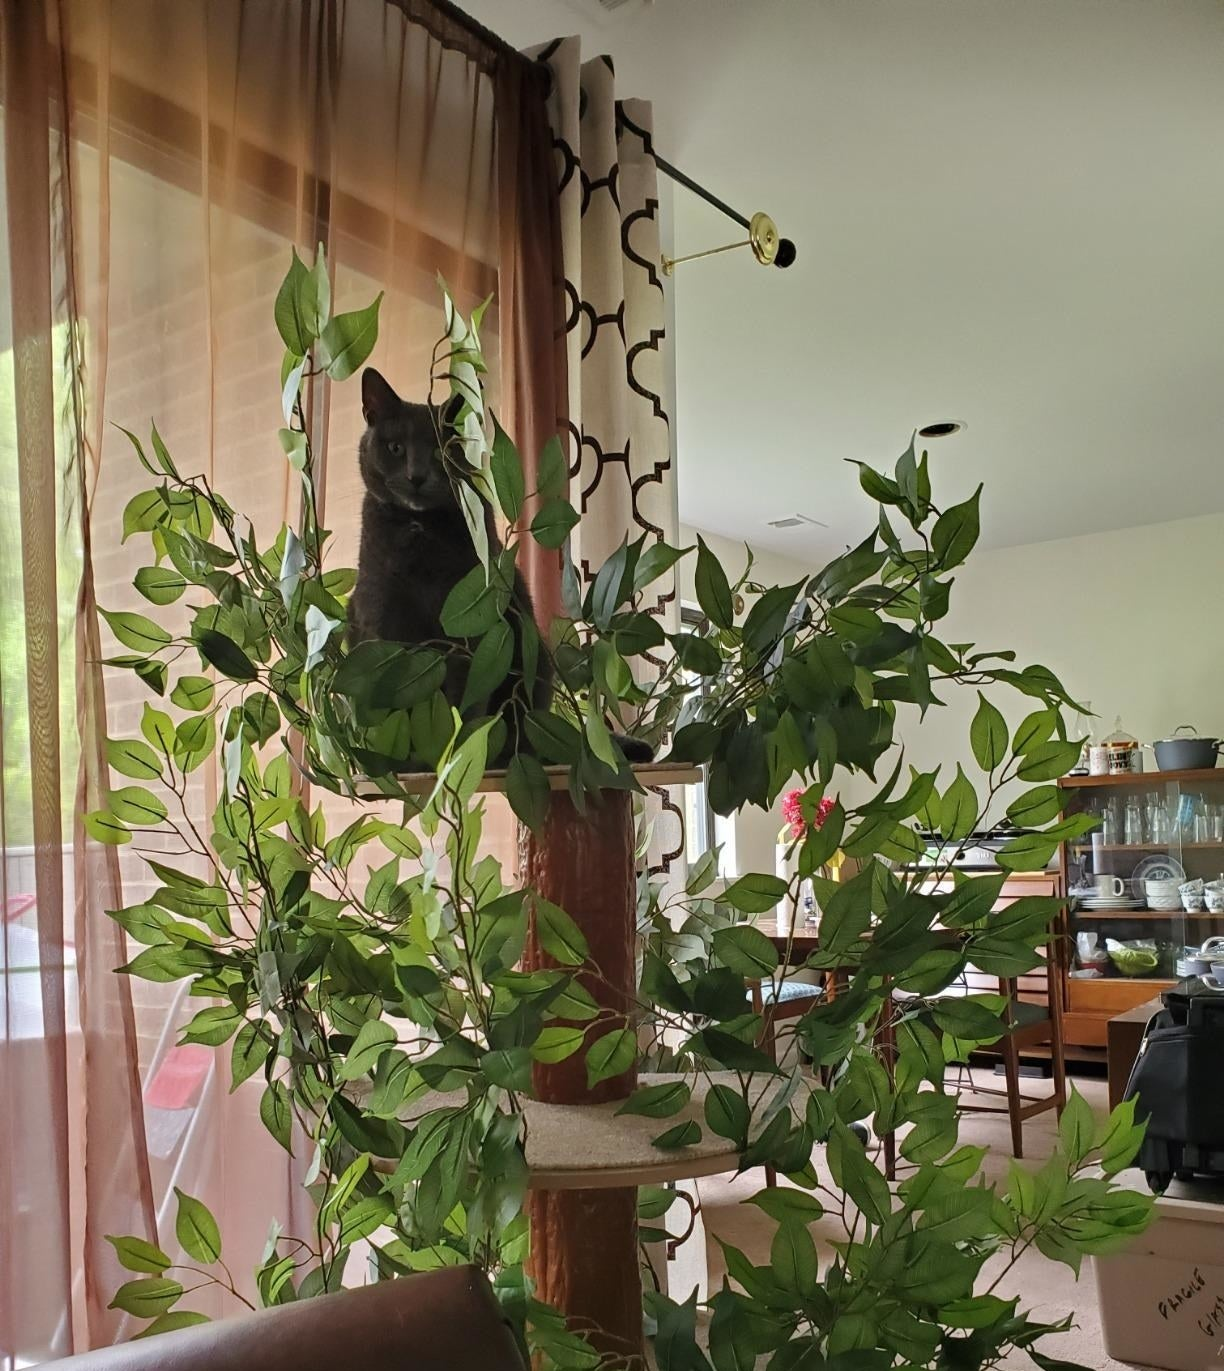 A reviewer's cat sitting in the treehouse